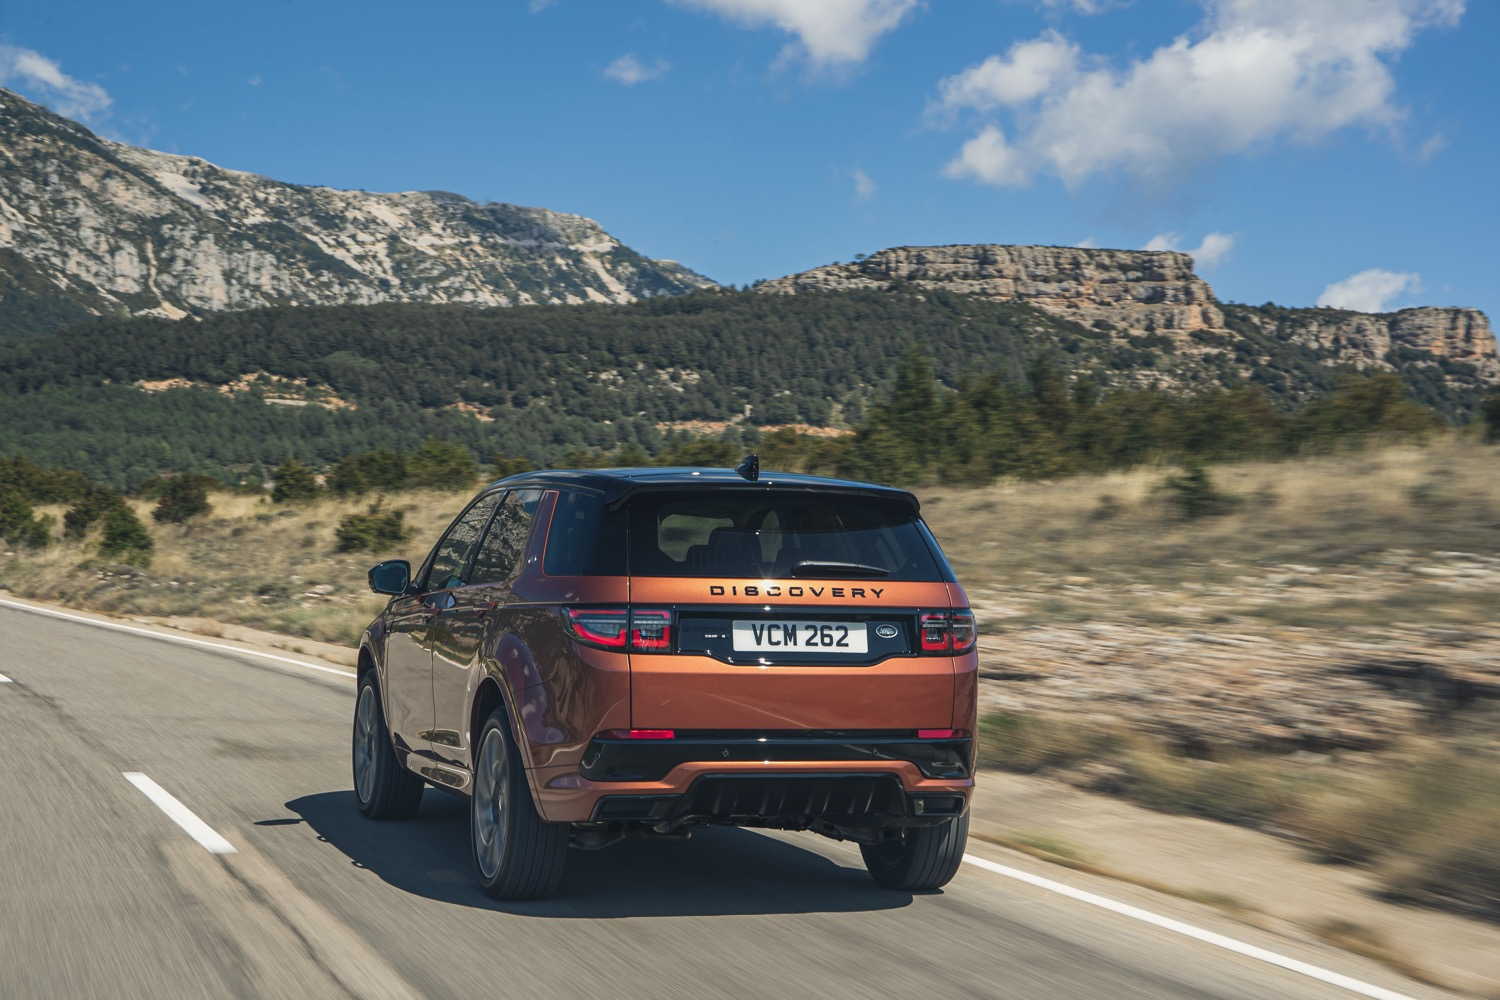 2020_land_rover_discovery_sport_facelift_04